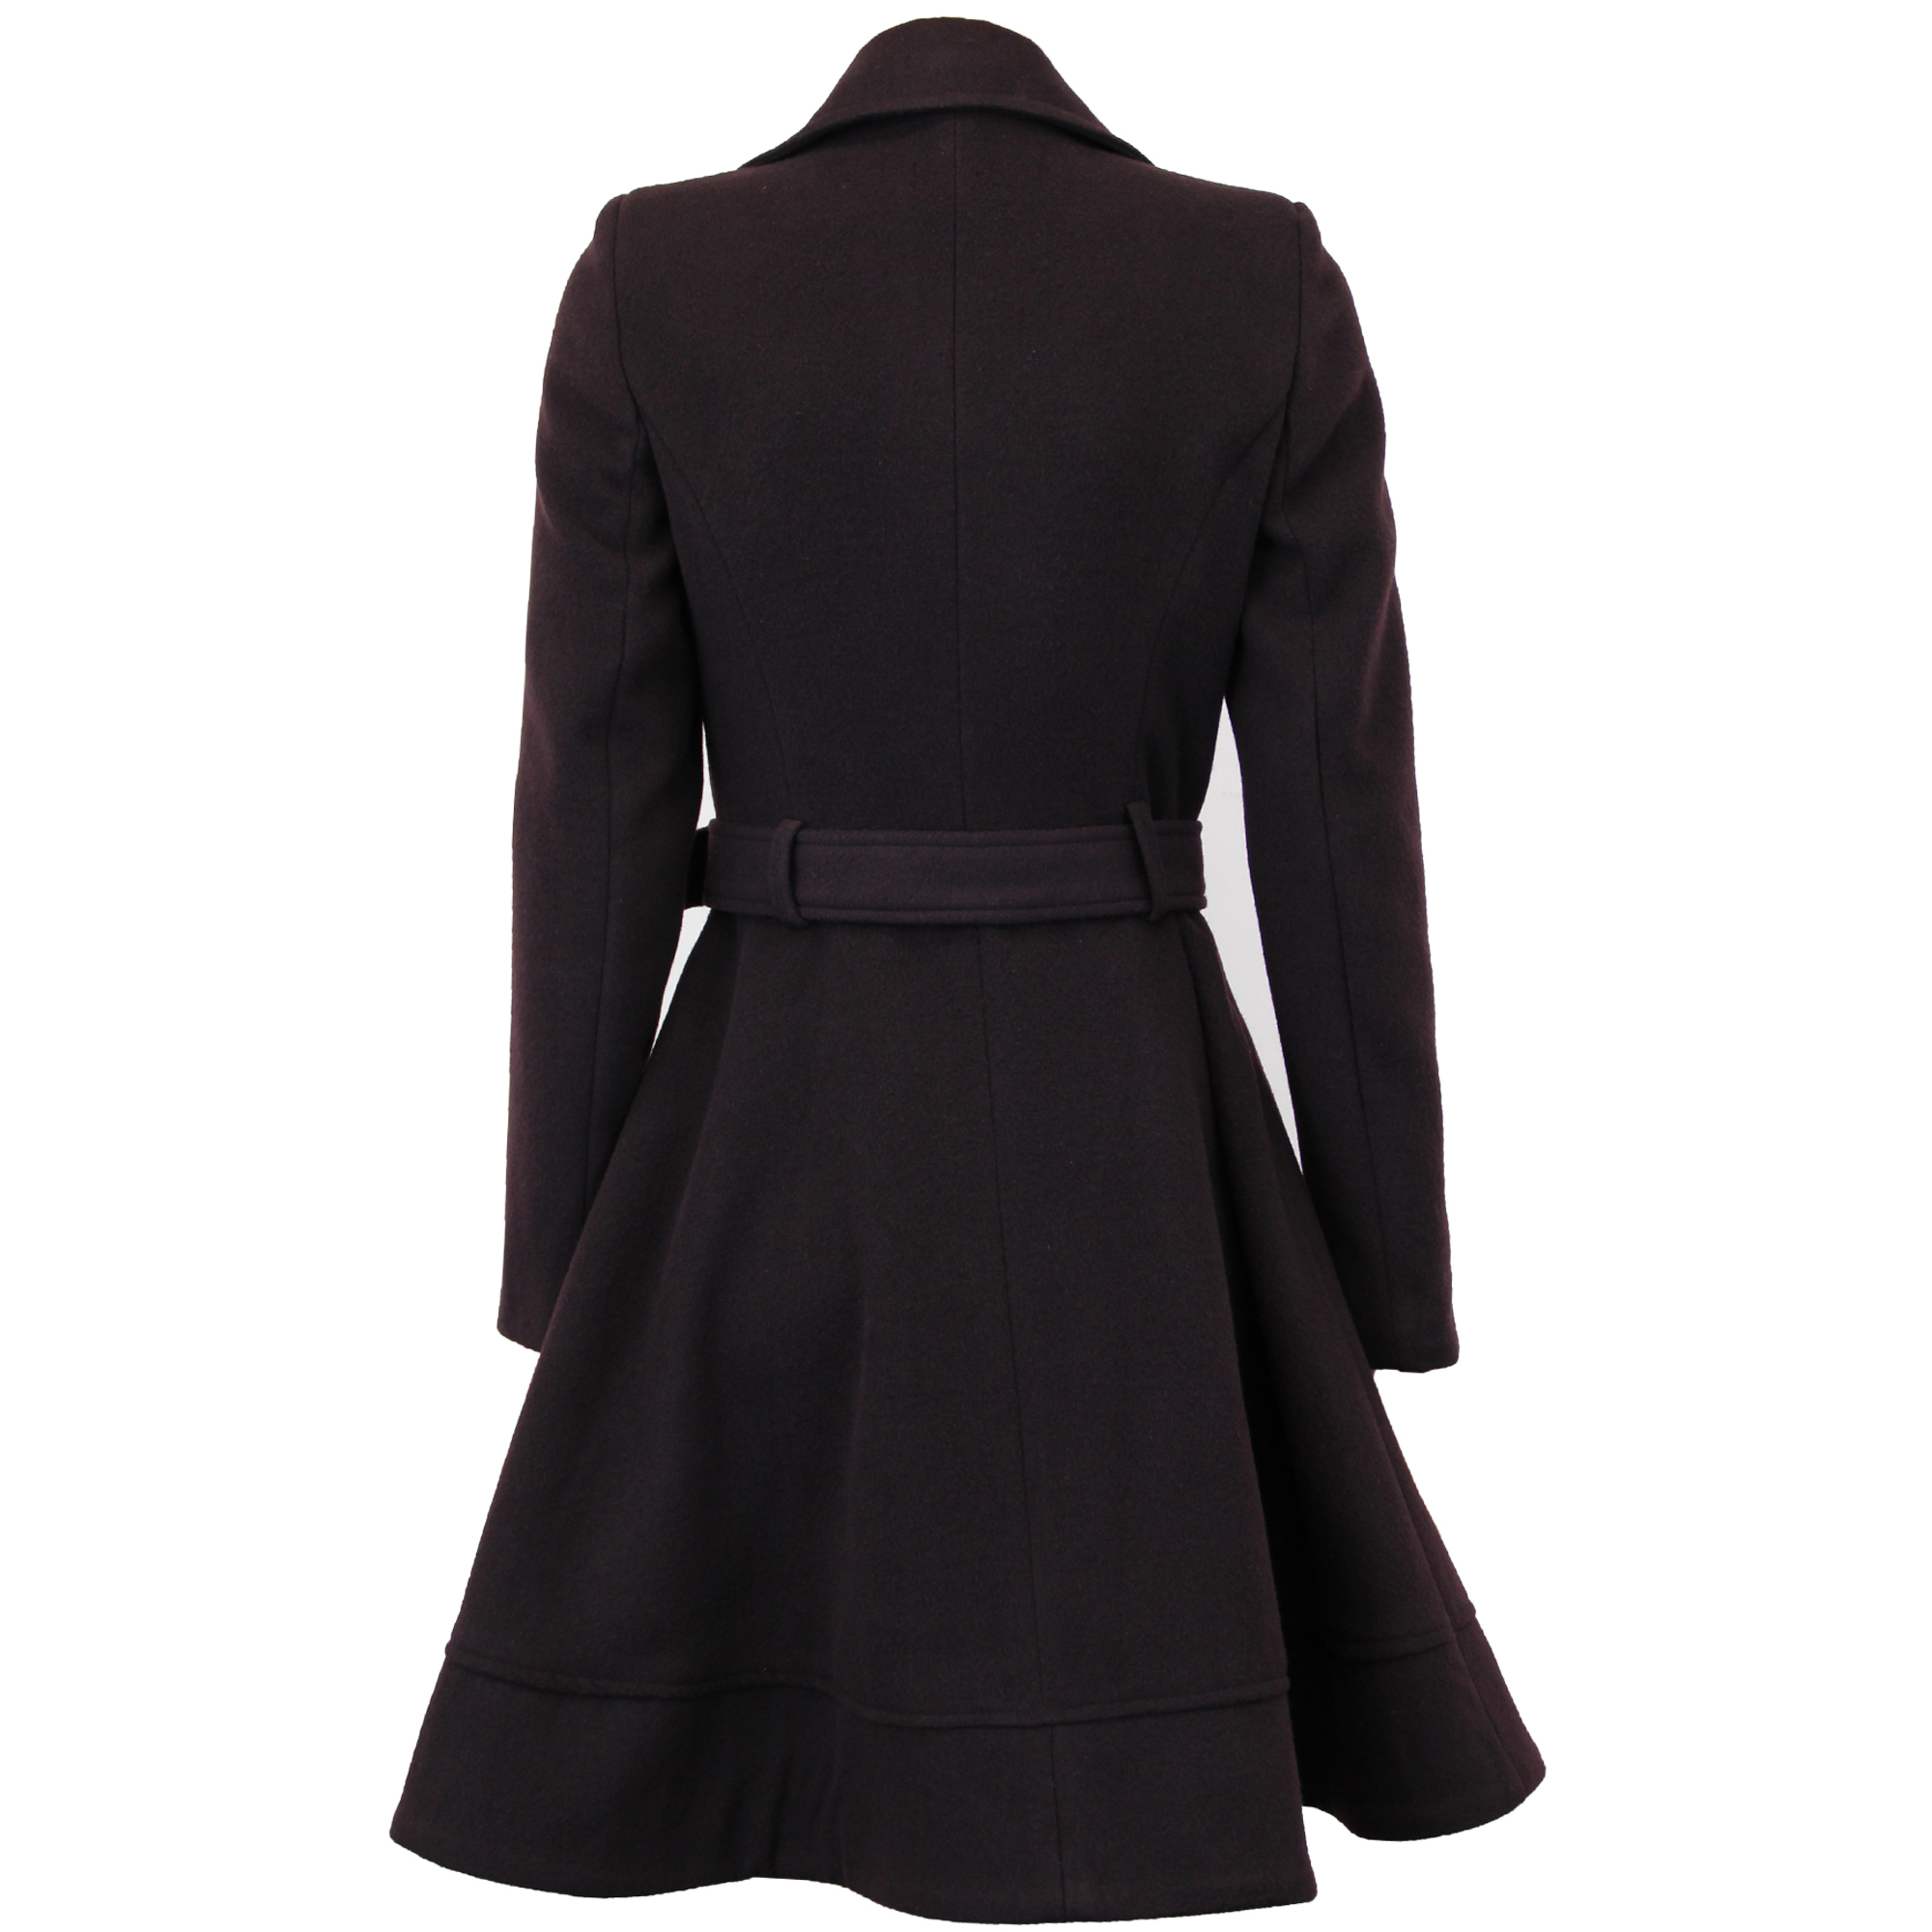 Ladies Coat Womens Jacket Wool LOOK Belt Long Trench Warm Winter ... 8ab871bb93